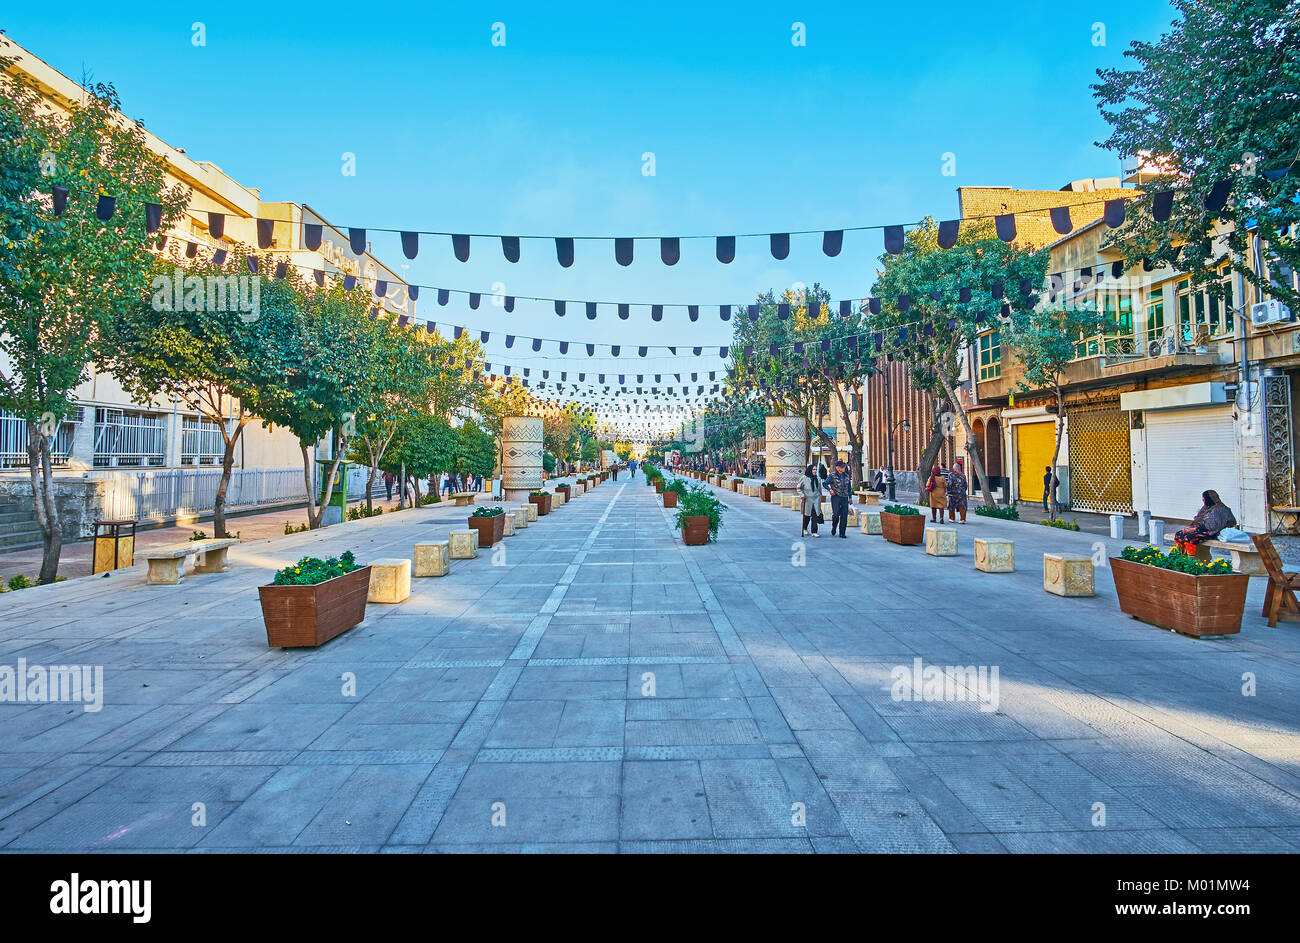 SHIRAZ, IRAN - OCTOBER 12, 2017: Zand walk street is the scenic location with shady tres and benches, located in - Stock Image